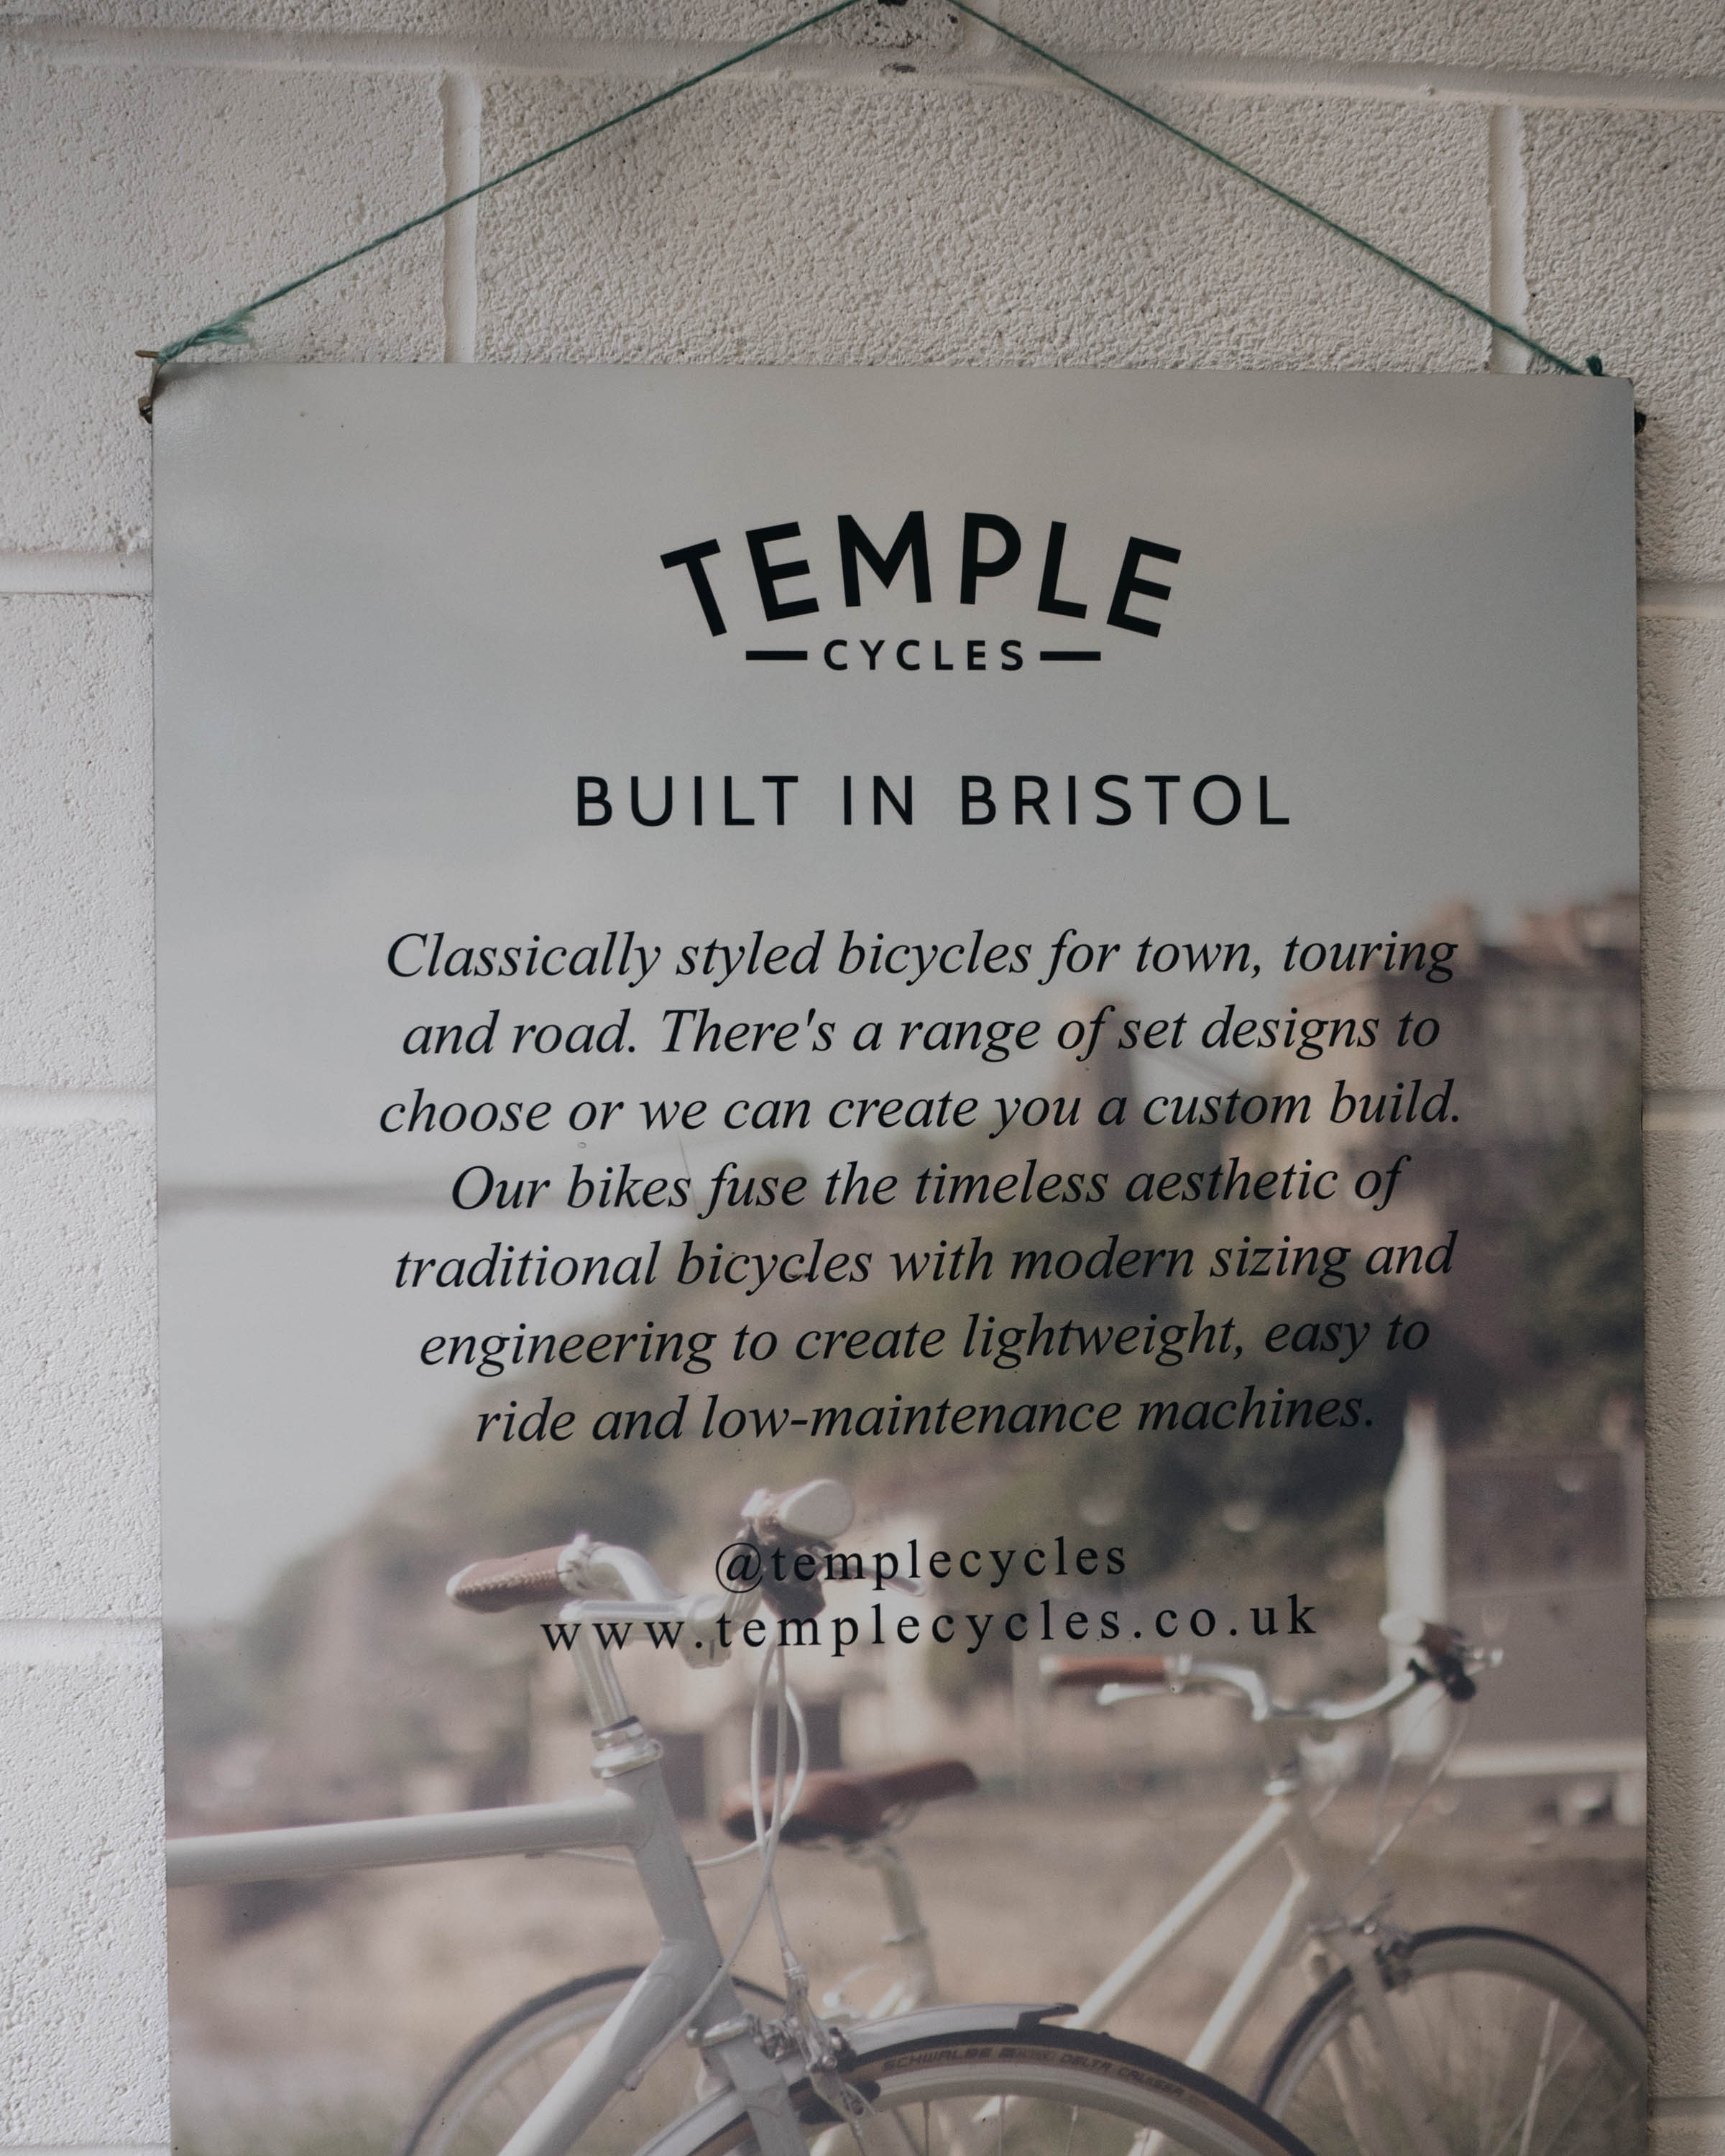 workshop tour temple cycles bristol littlegreenshed